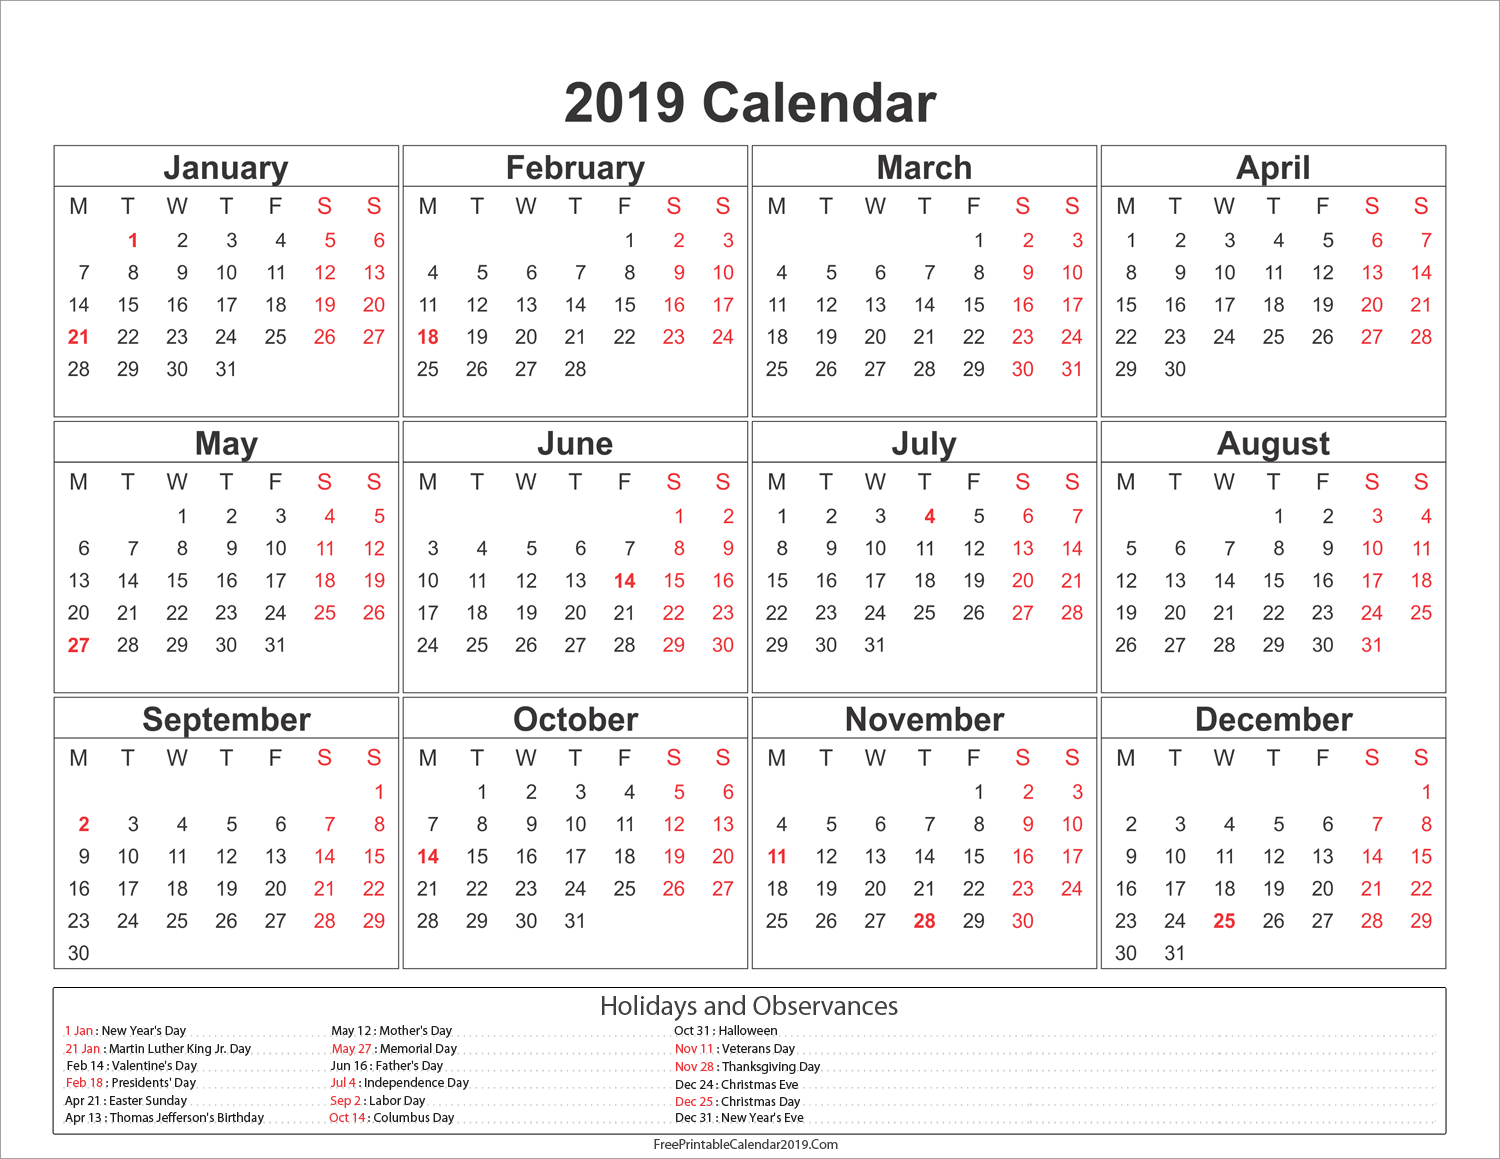 2019 Calendar With Holidays - Us, Uk, Australia, Canada - Calendar Calendar 2019 With Federal Holidays